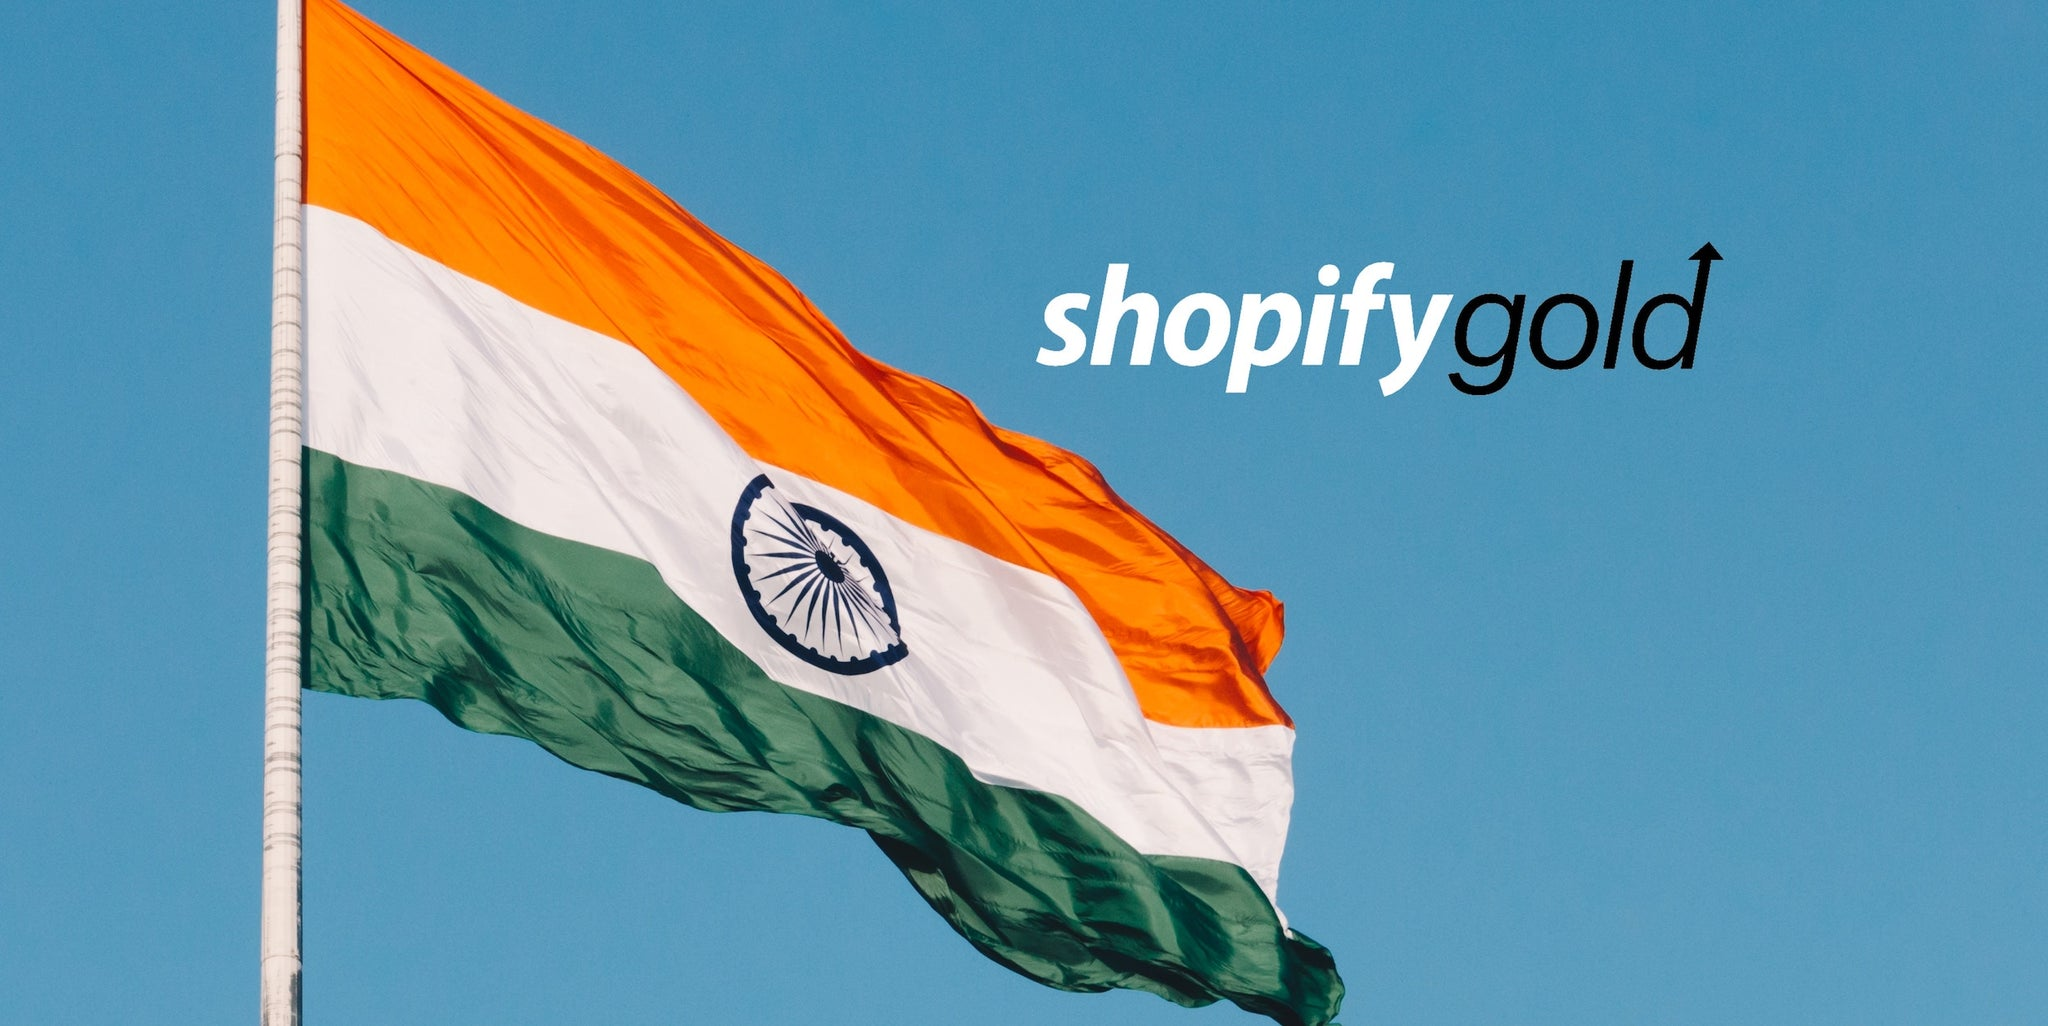 Shopify Gold: India's Enterprise eCommerce Solution